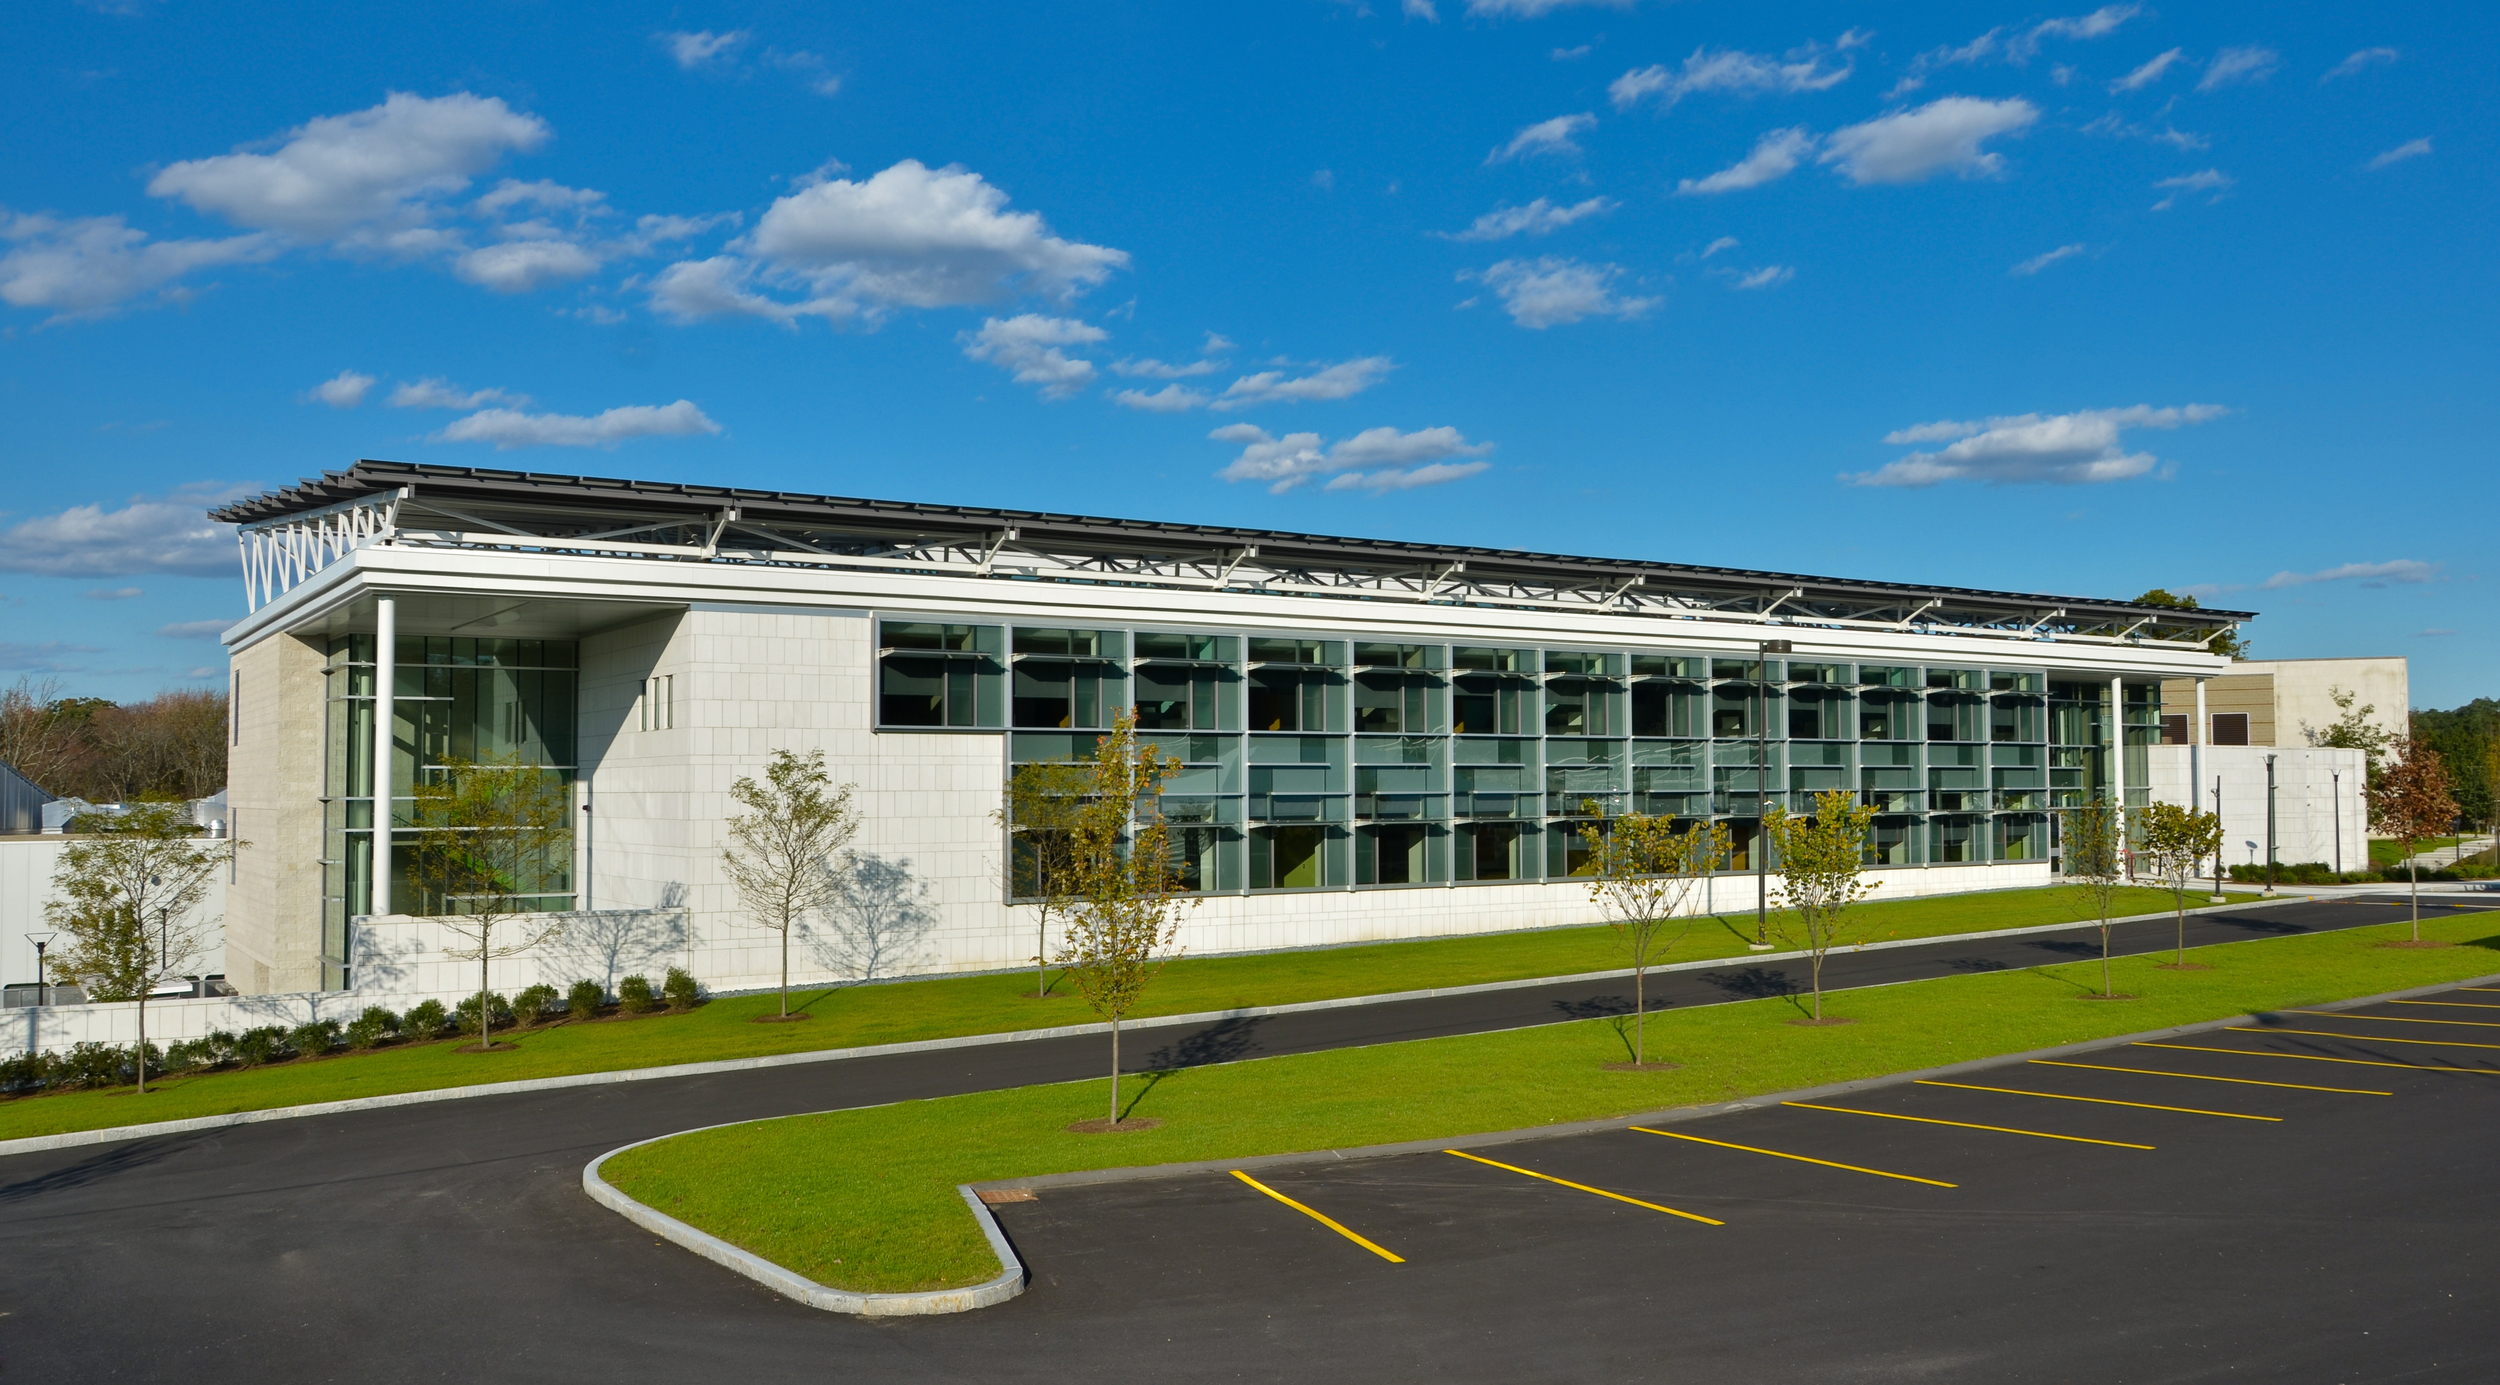 NSCC, Allied Health Building, Danvers, MA